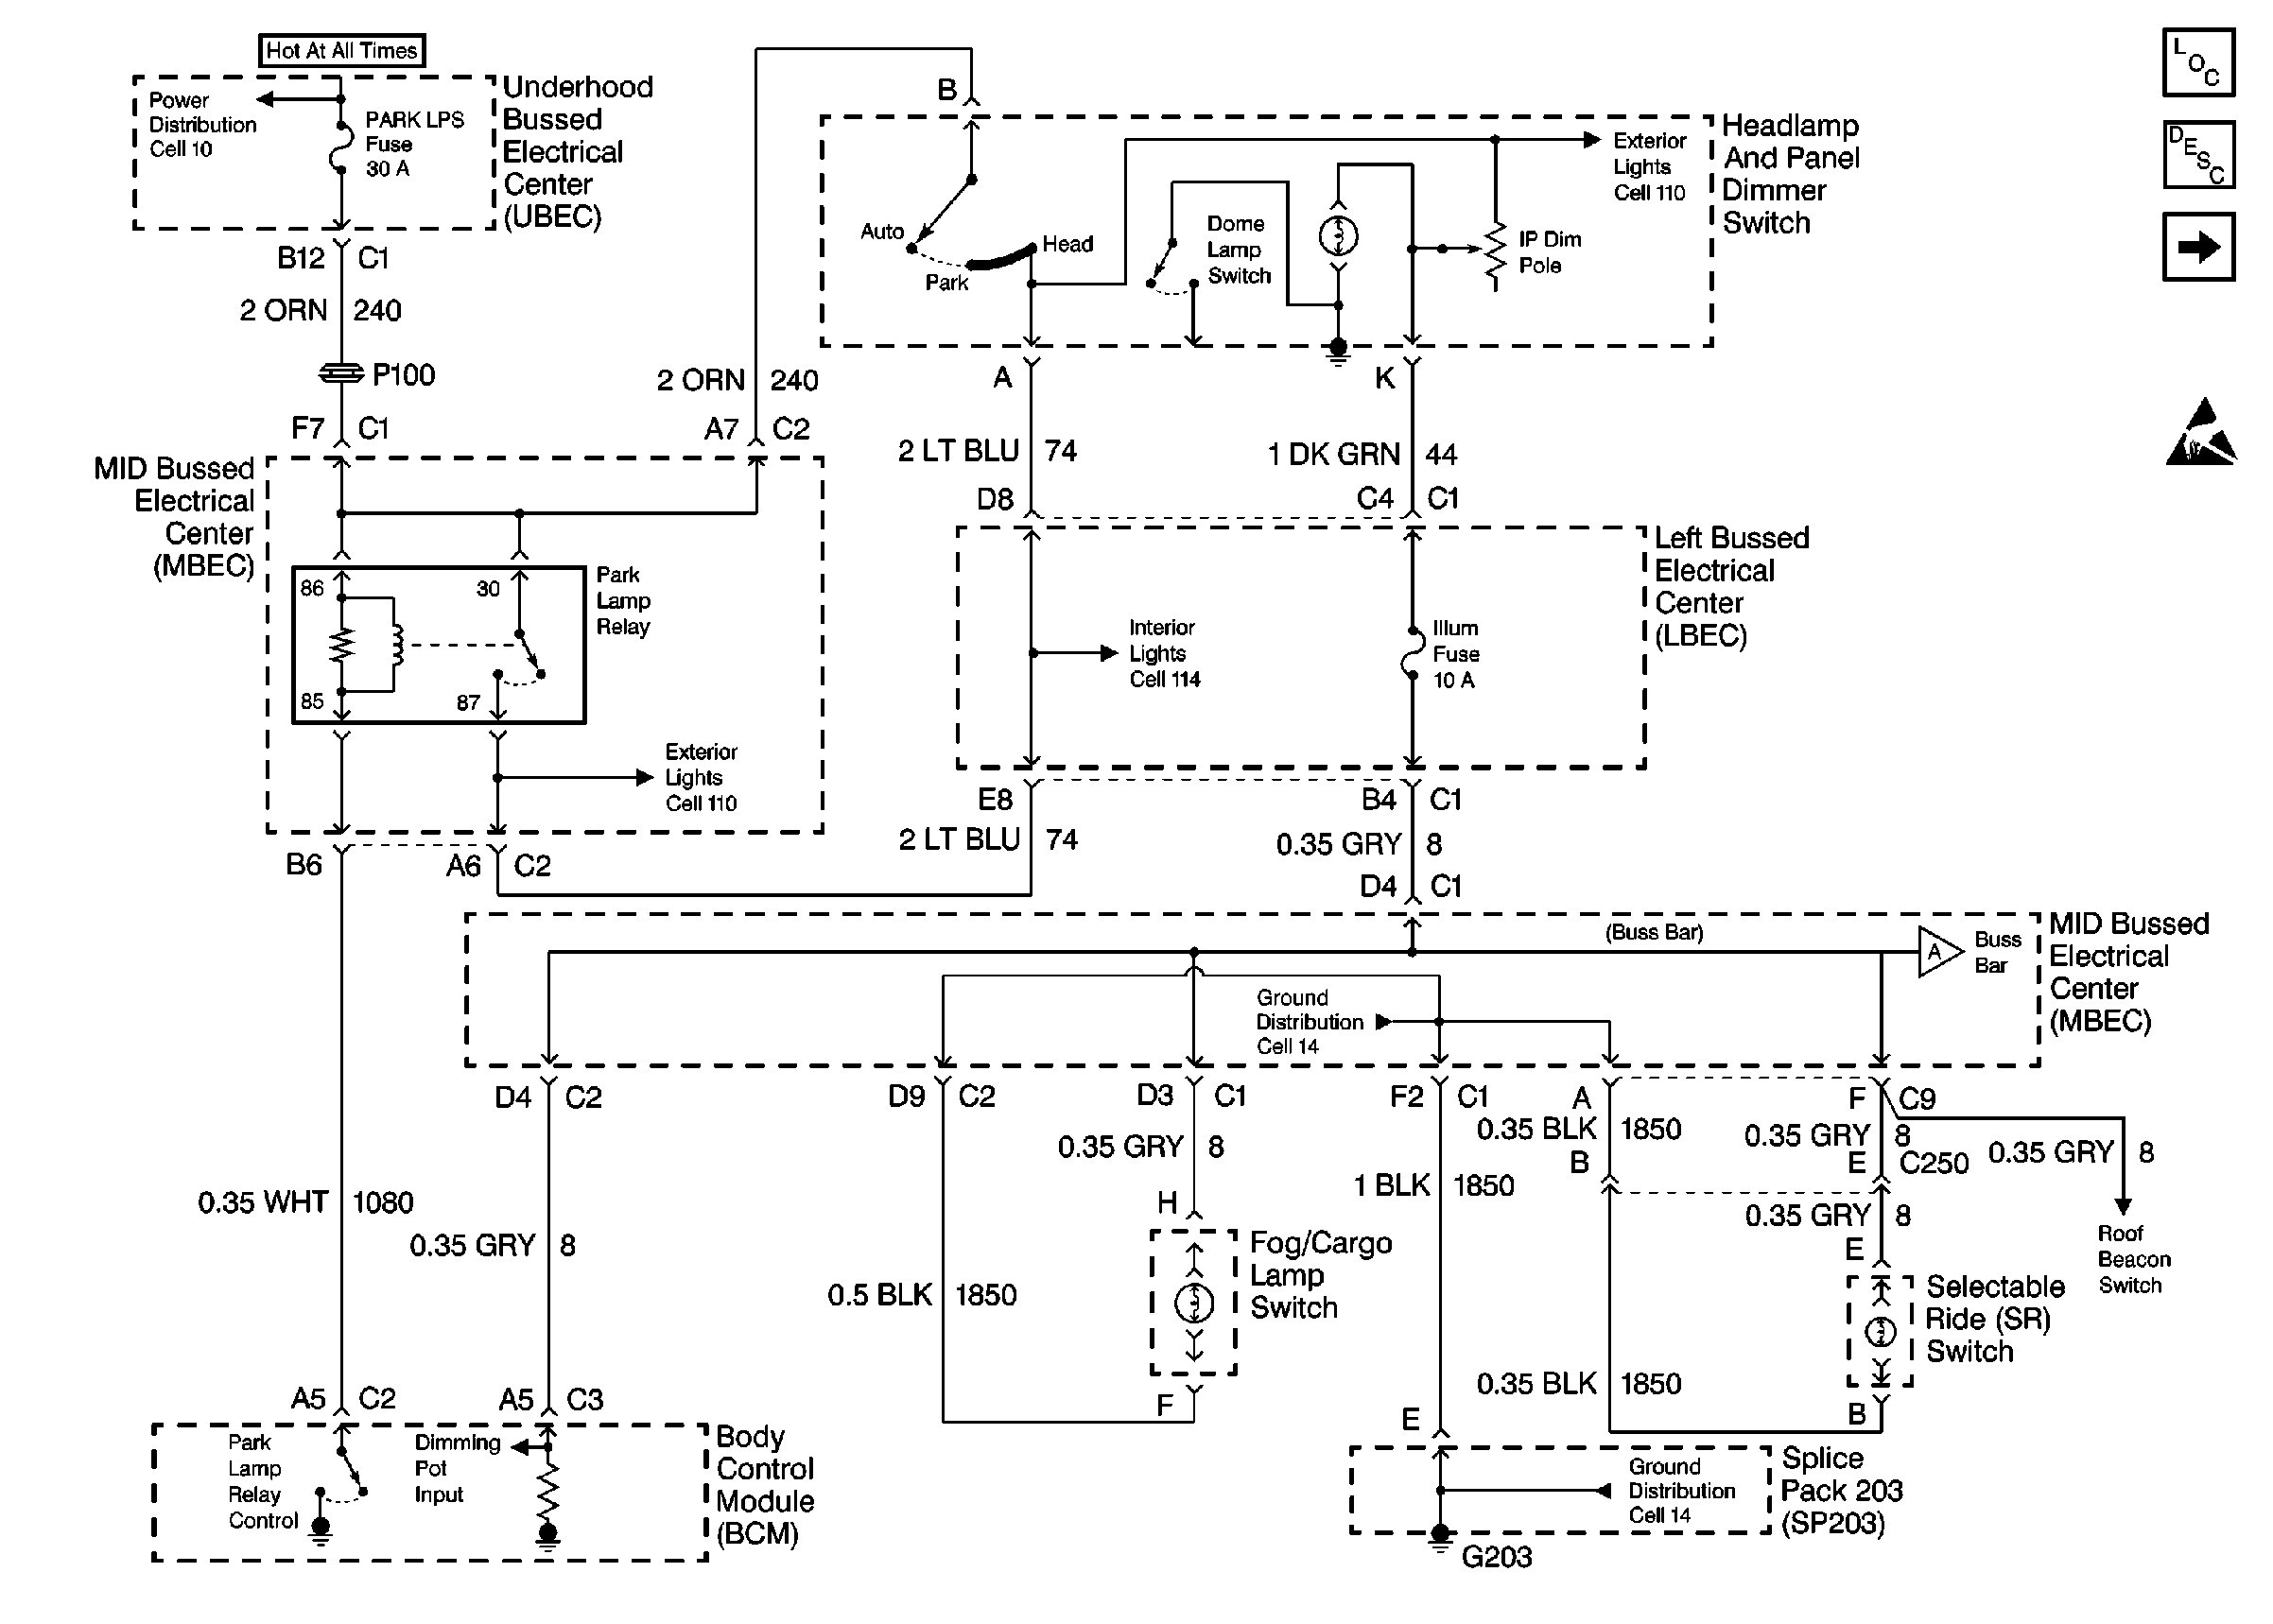 2007 Chevy Trailer Wiring Diagram Archive Of Automotive For Tahoe Trusted Schematics Rh Propeller Sf Com Colorado